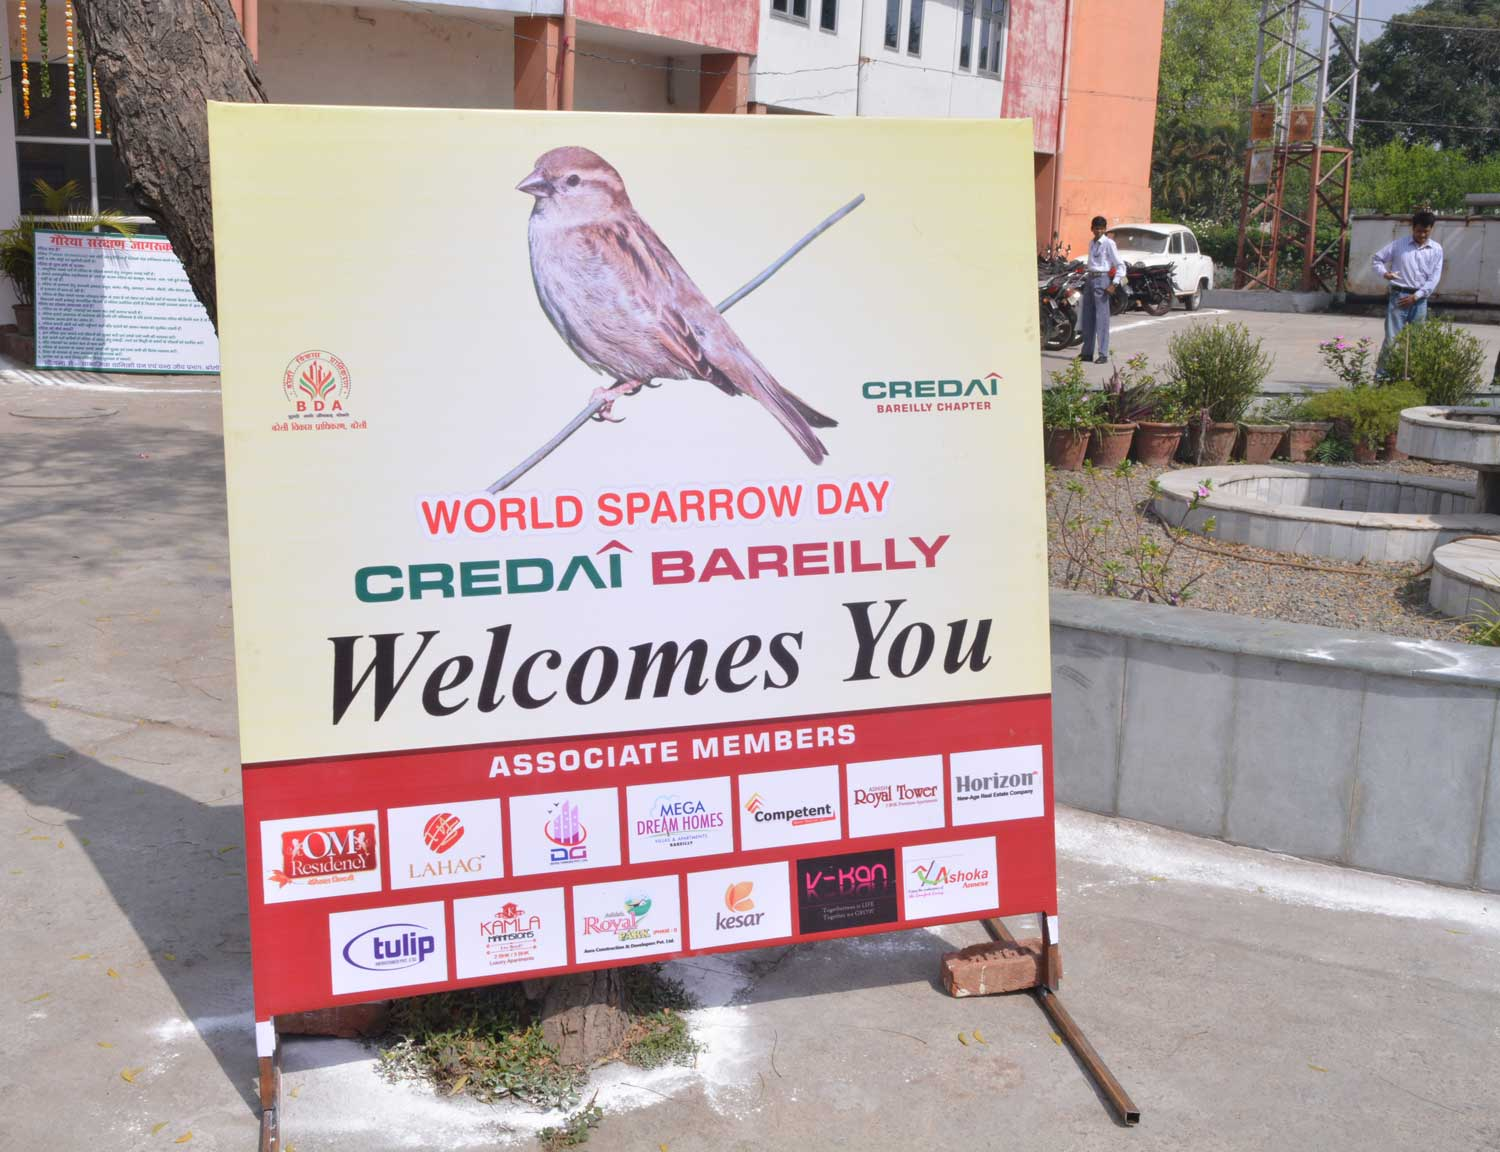 Credai Vision and Mission